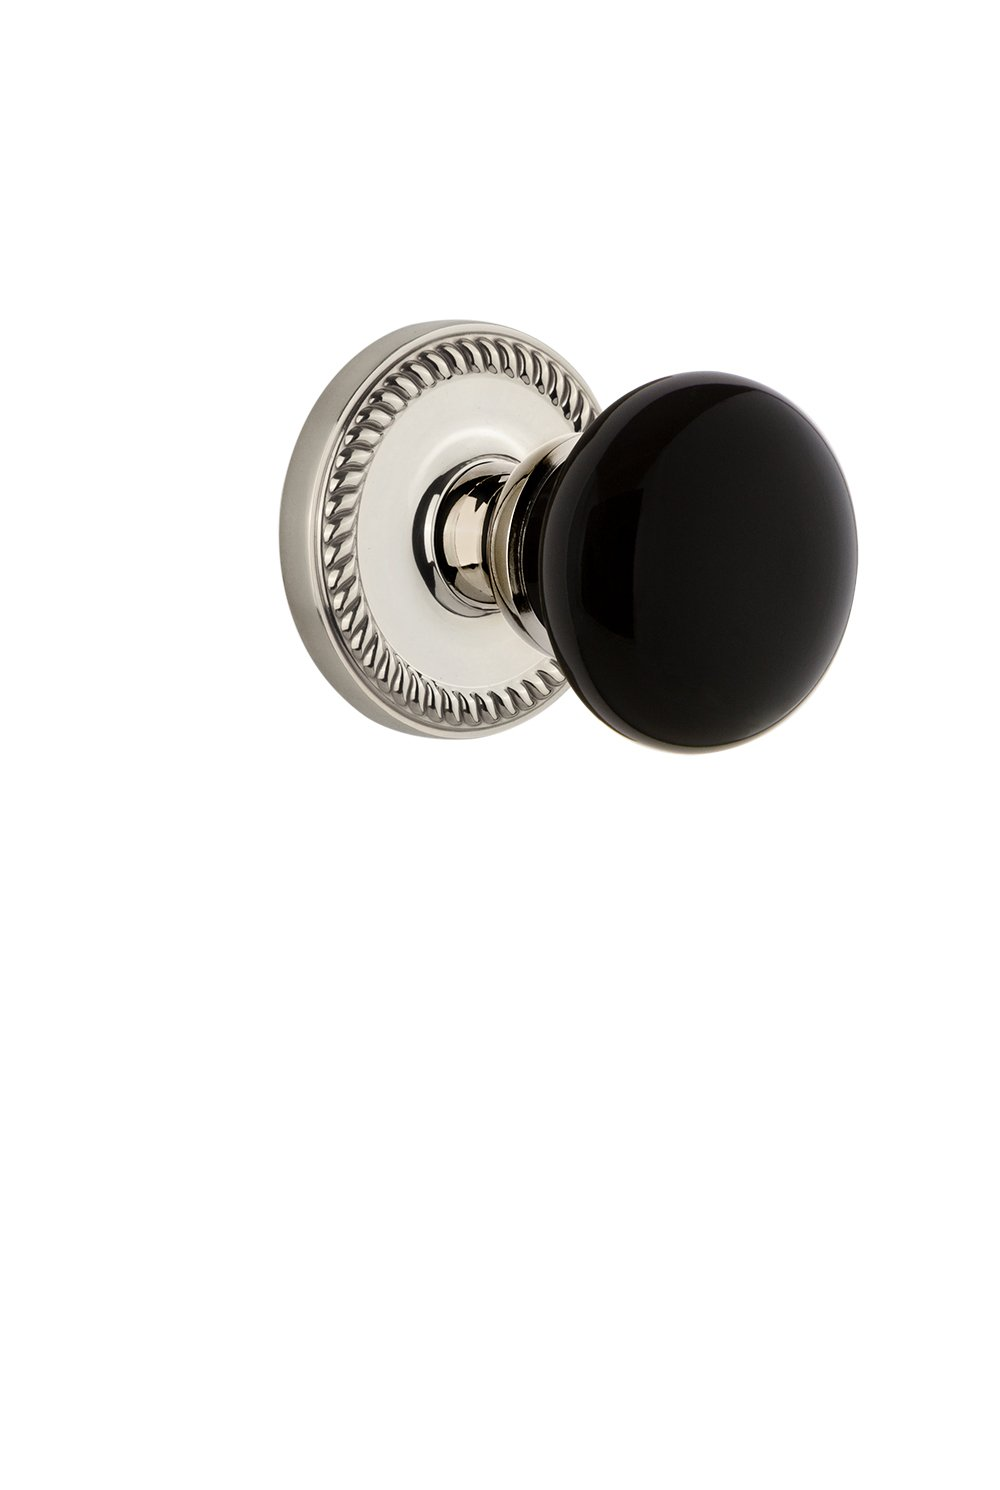 2.375 Polished Nickel Grandeur Hardware 853024 Newport Rosette with Coventry Knob Privacy Backset Size